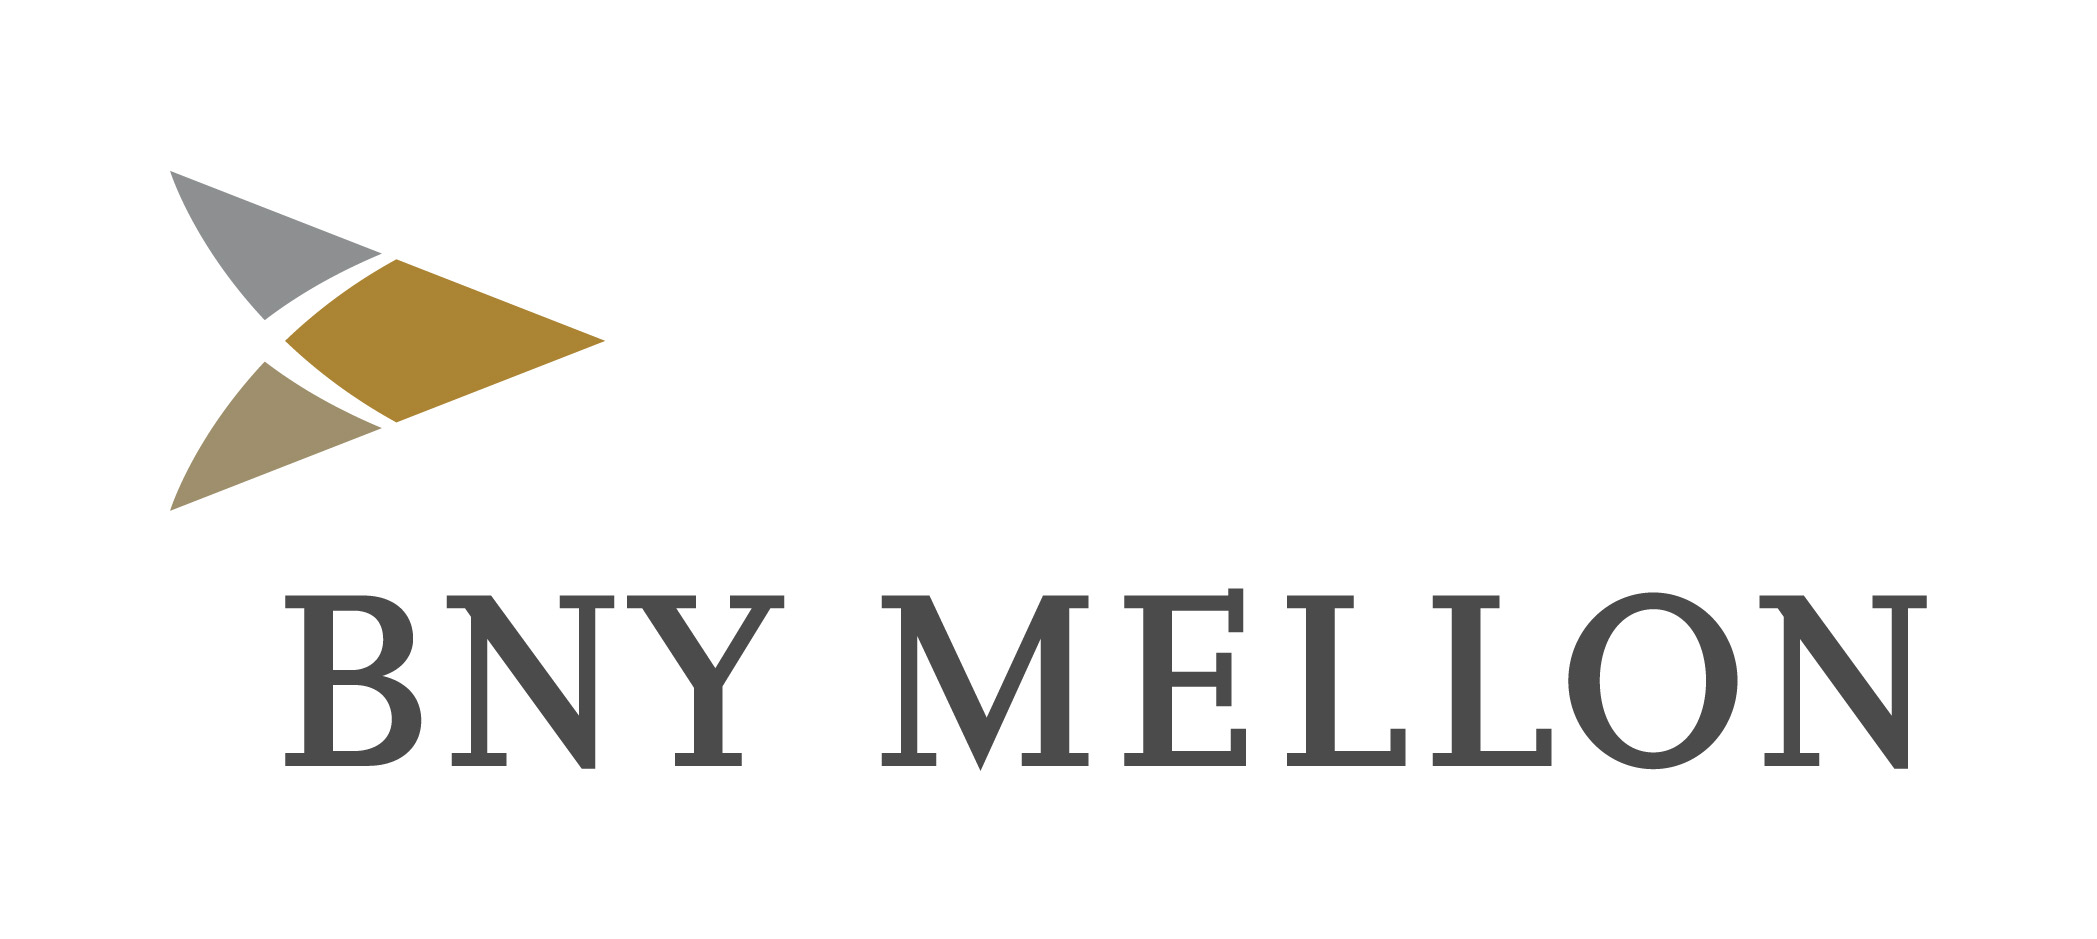 BNY Mellon_Gold.jpg